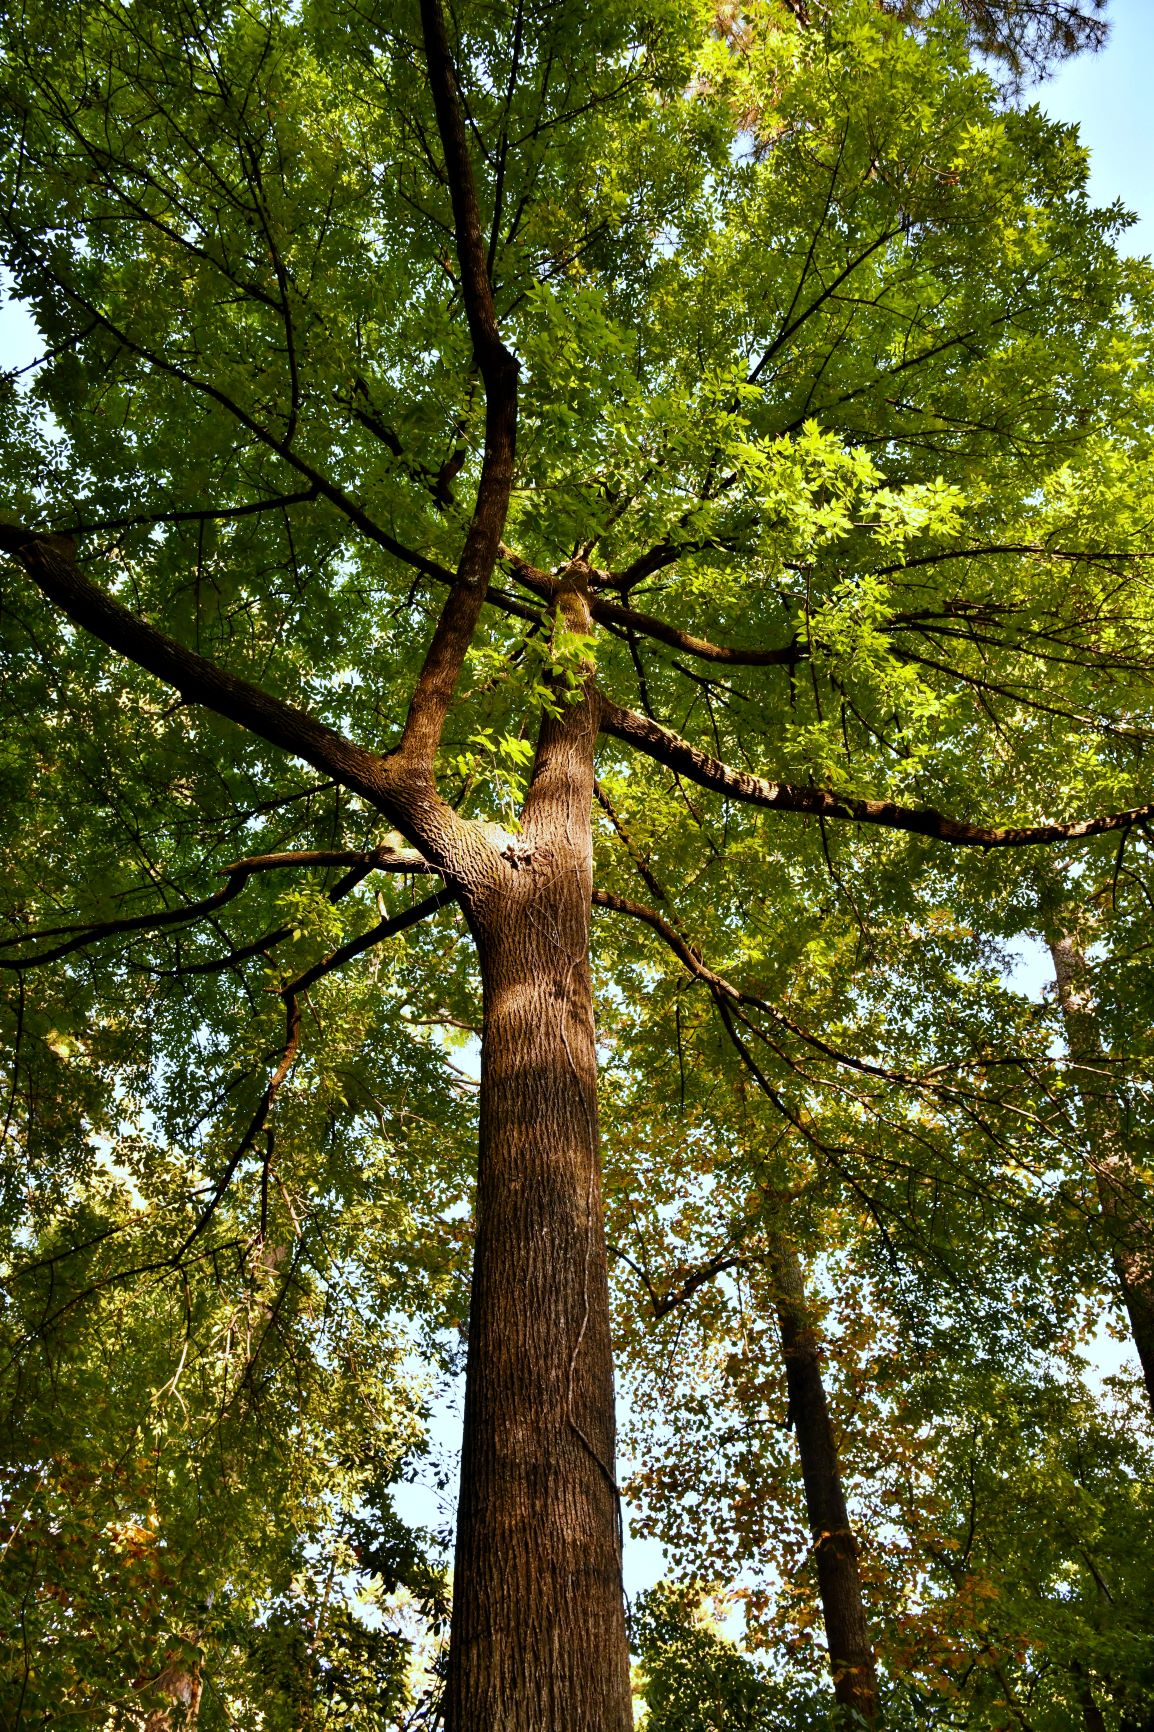 Hanley_Asiatic_tree canopy vertical_10-19-20 small